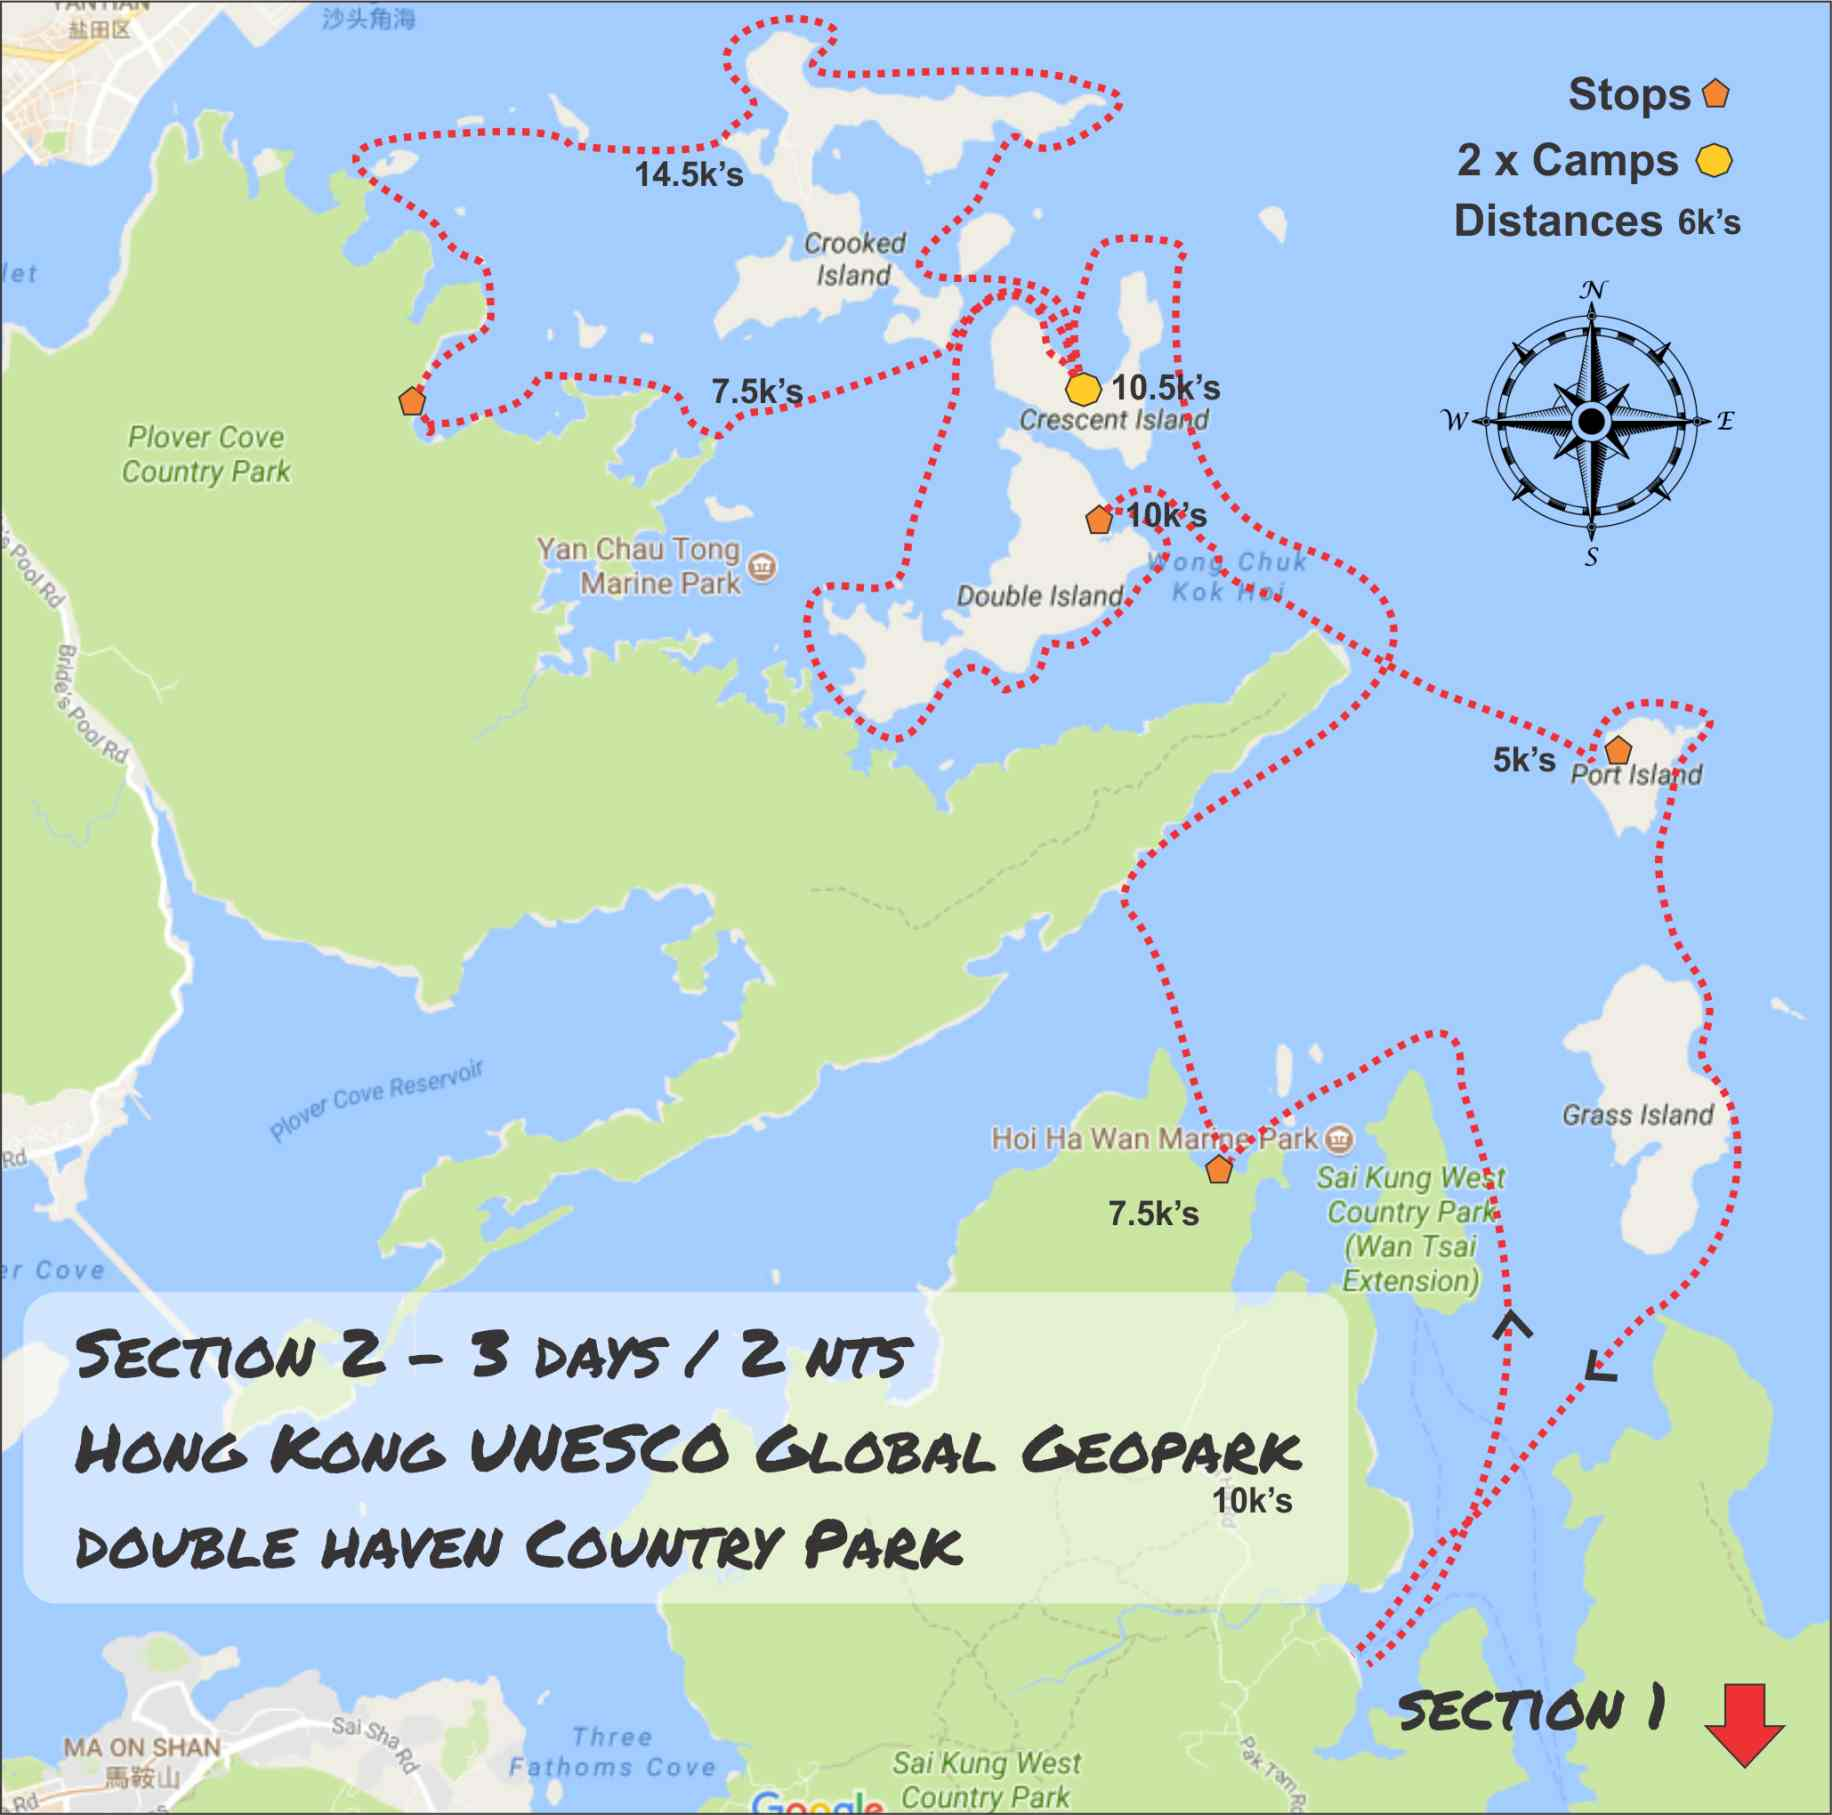 Geopark Sea Kayak Expedition Double Haven